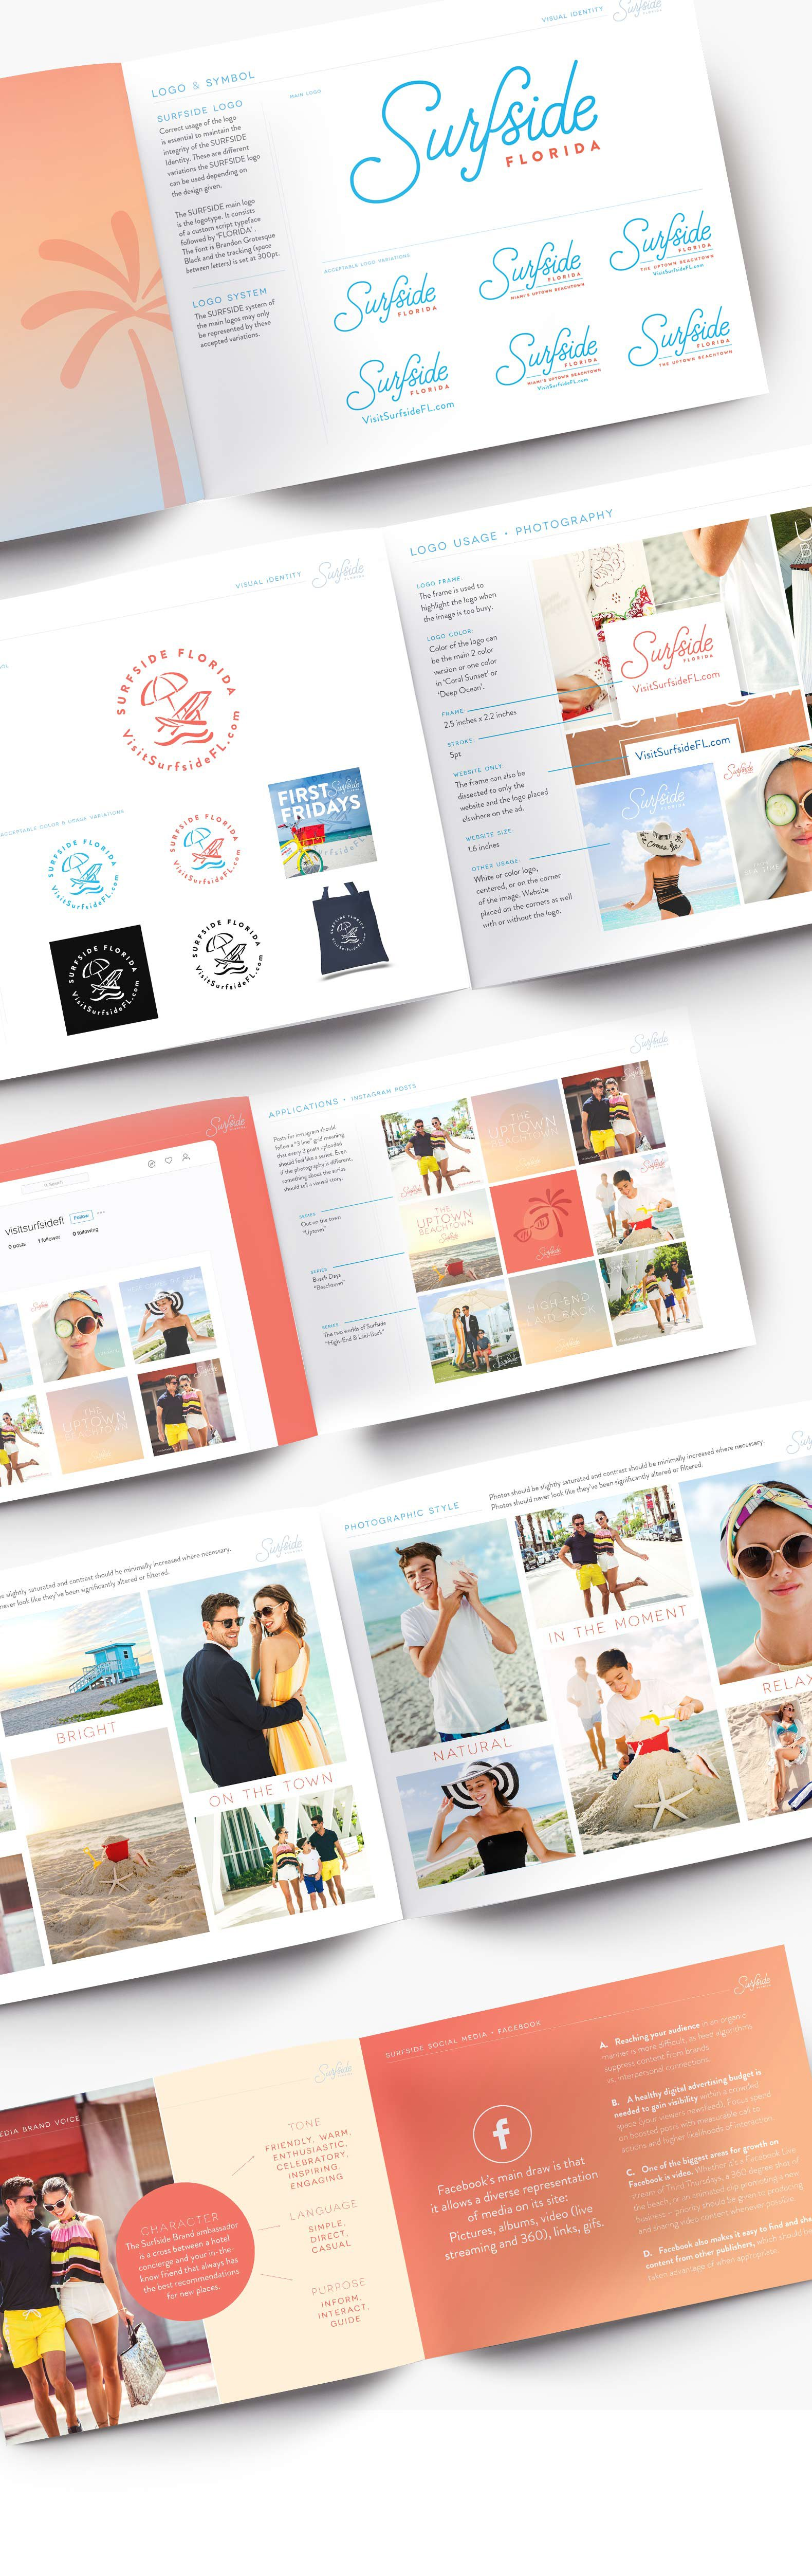 Jacober Creative Identity and Campaign for the Town of Surfside Florida - Photo of branding guidelines